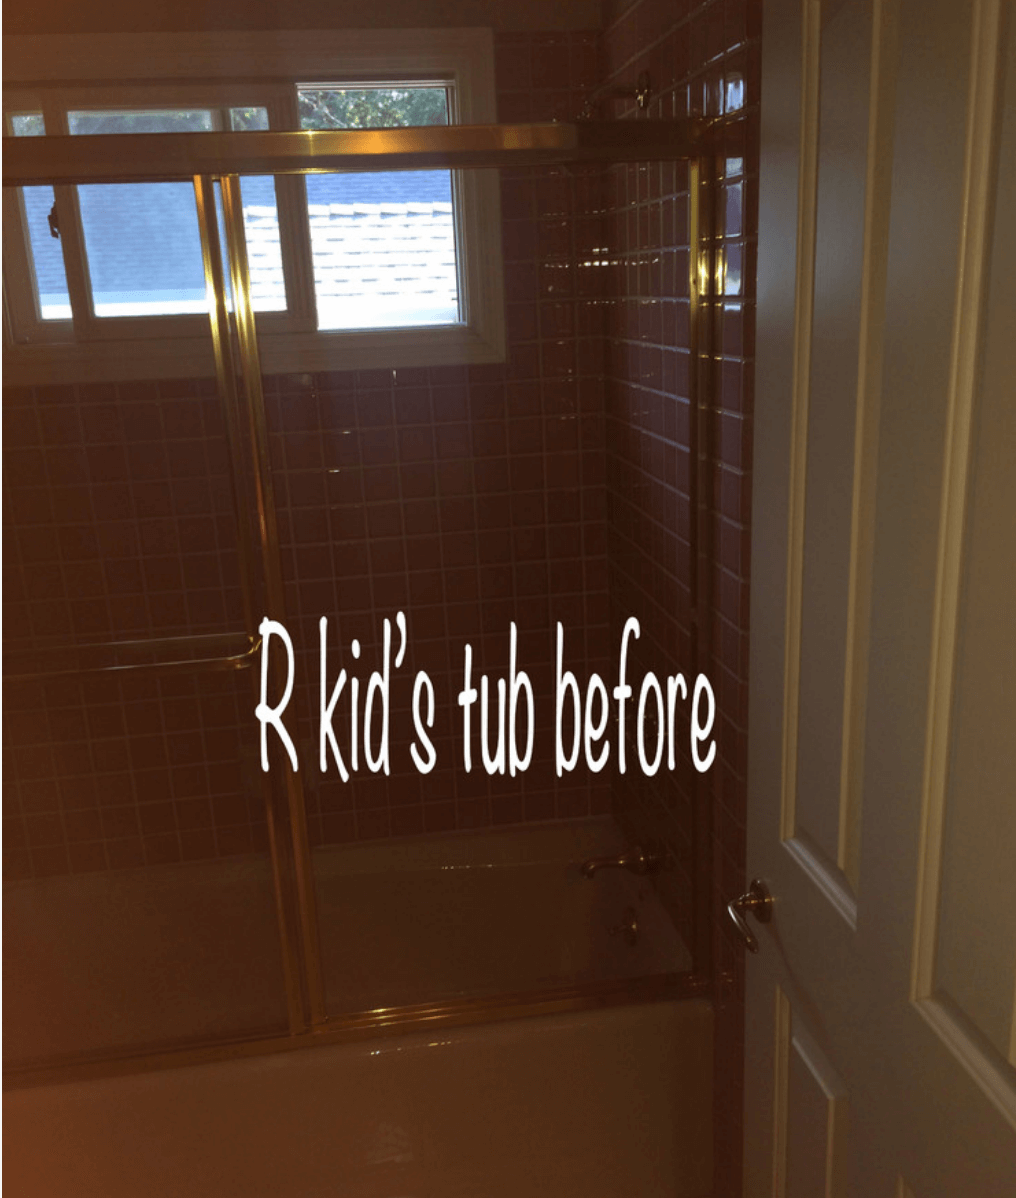 Project Guru Interior Design concord walnut creek kids bathroom remodel before.png